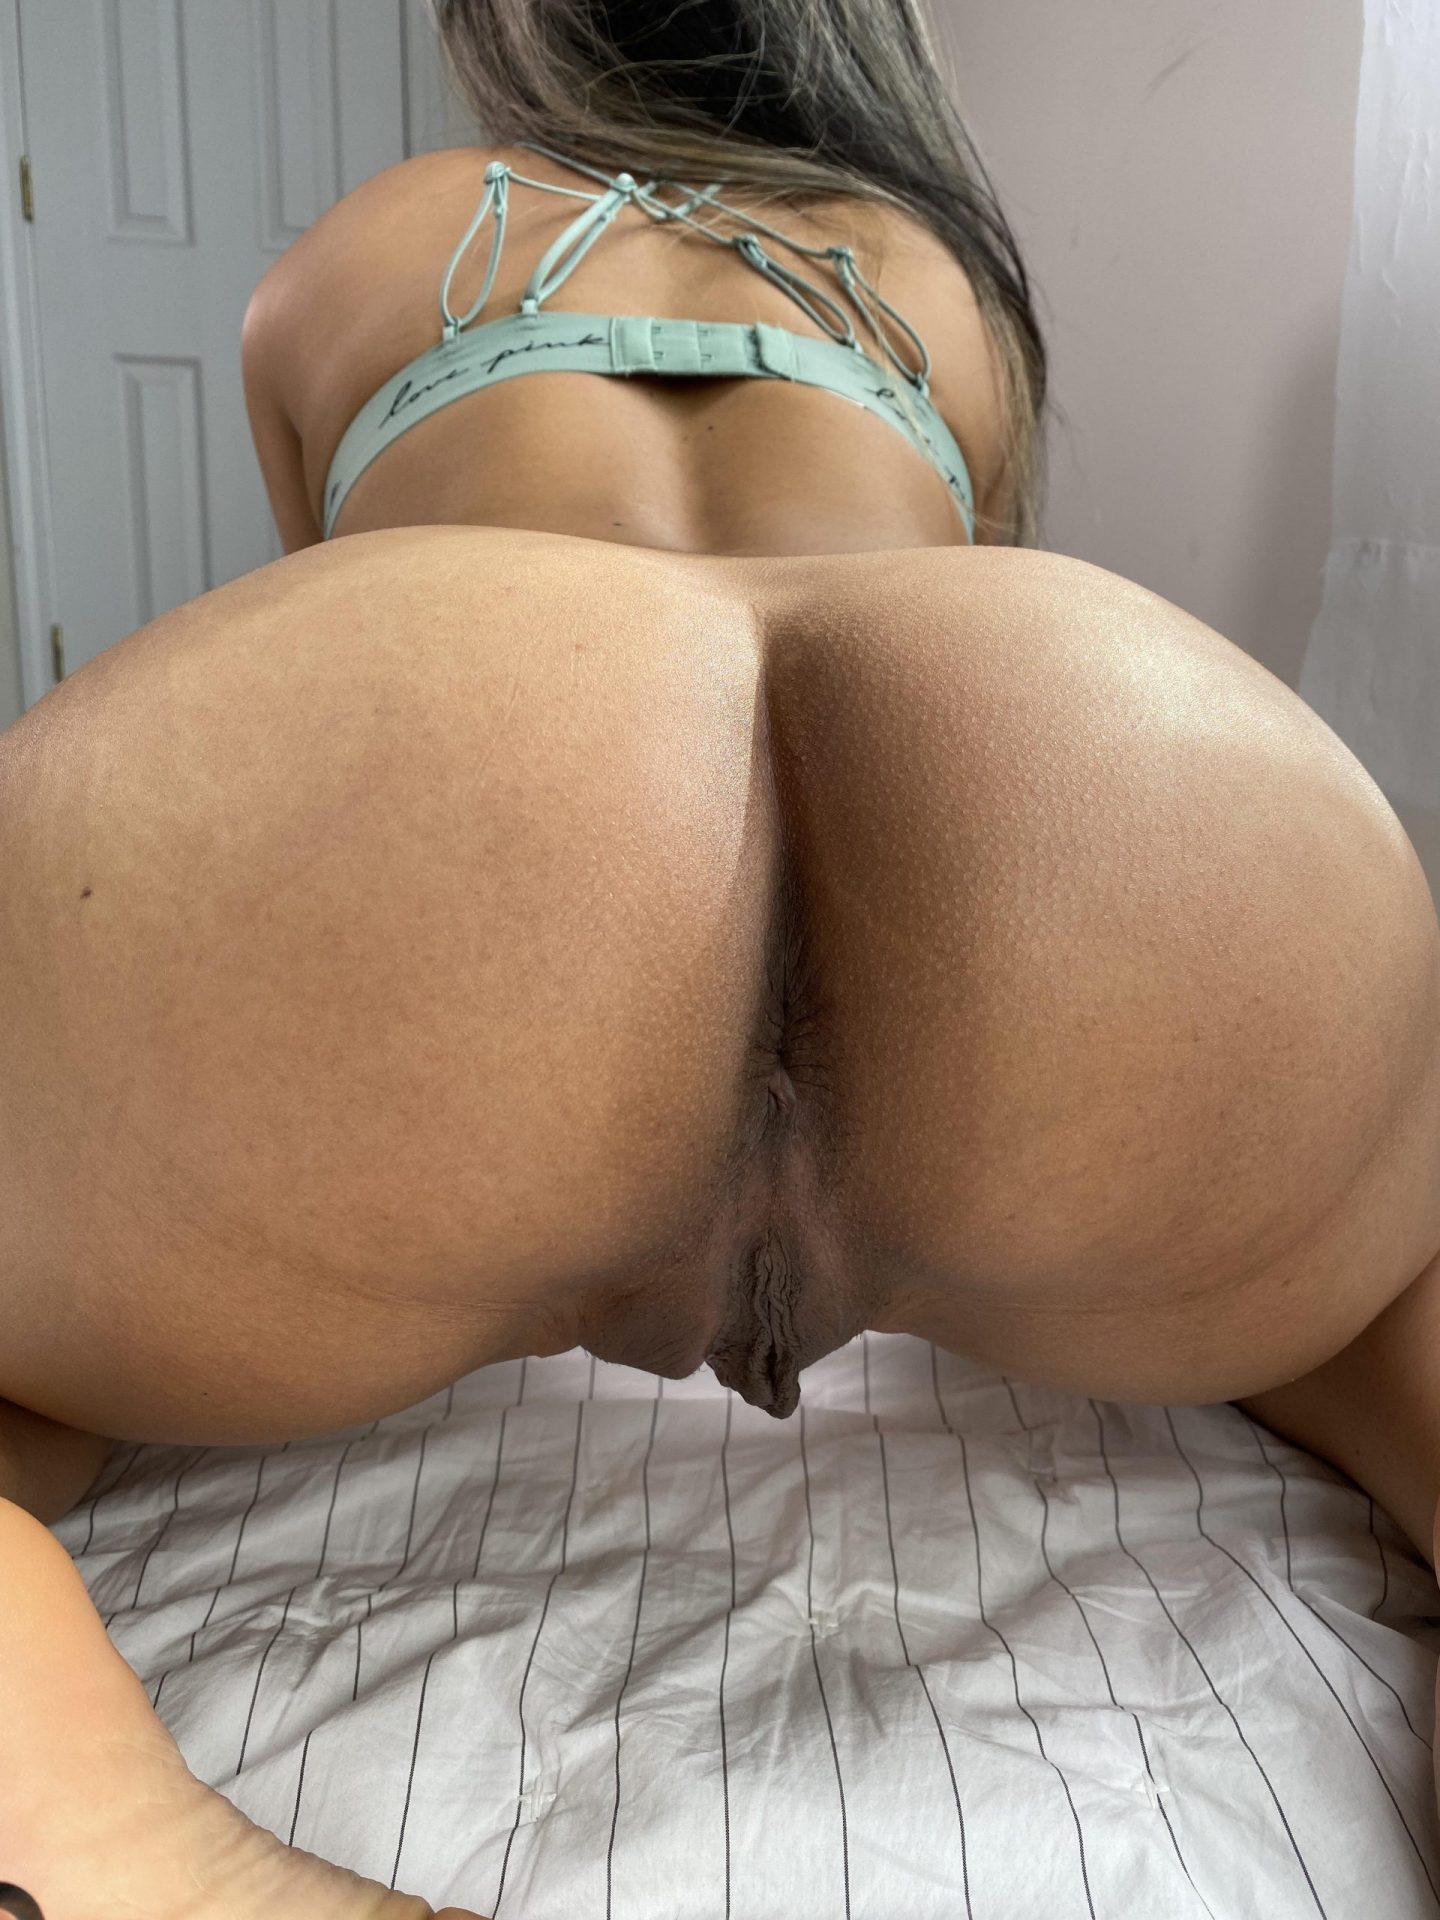 Would you fuck my phat ass?